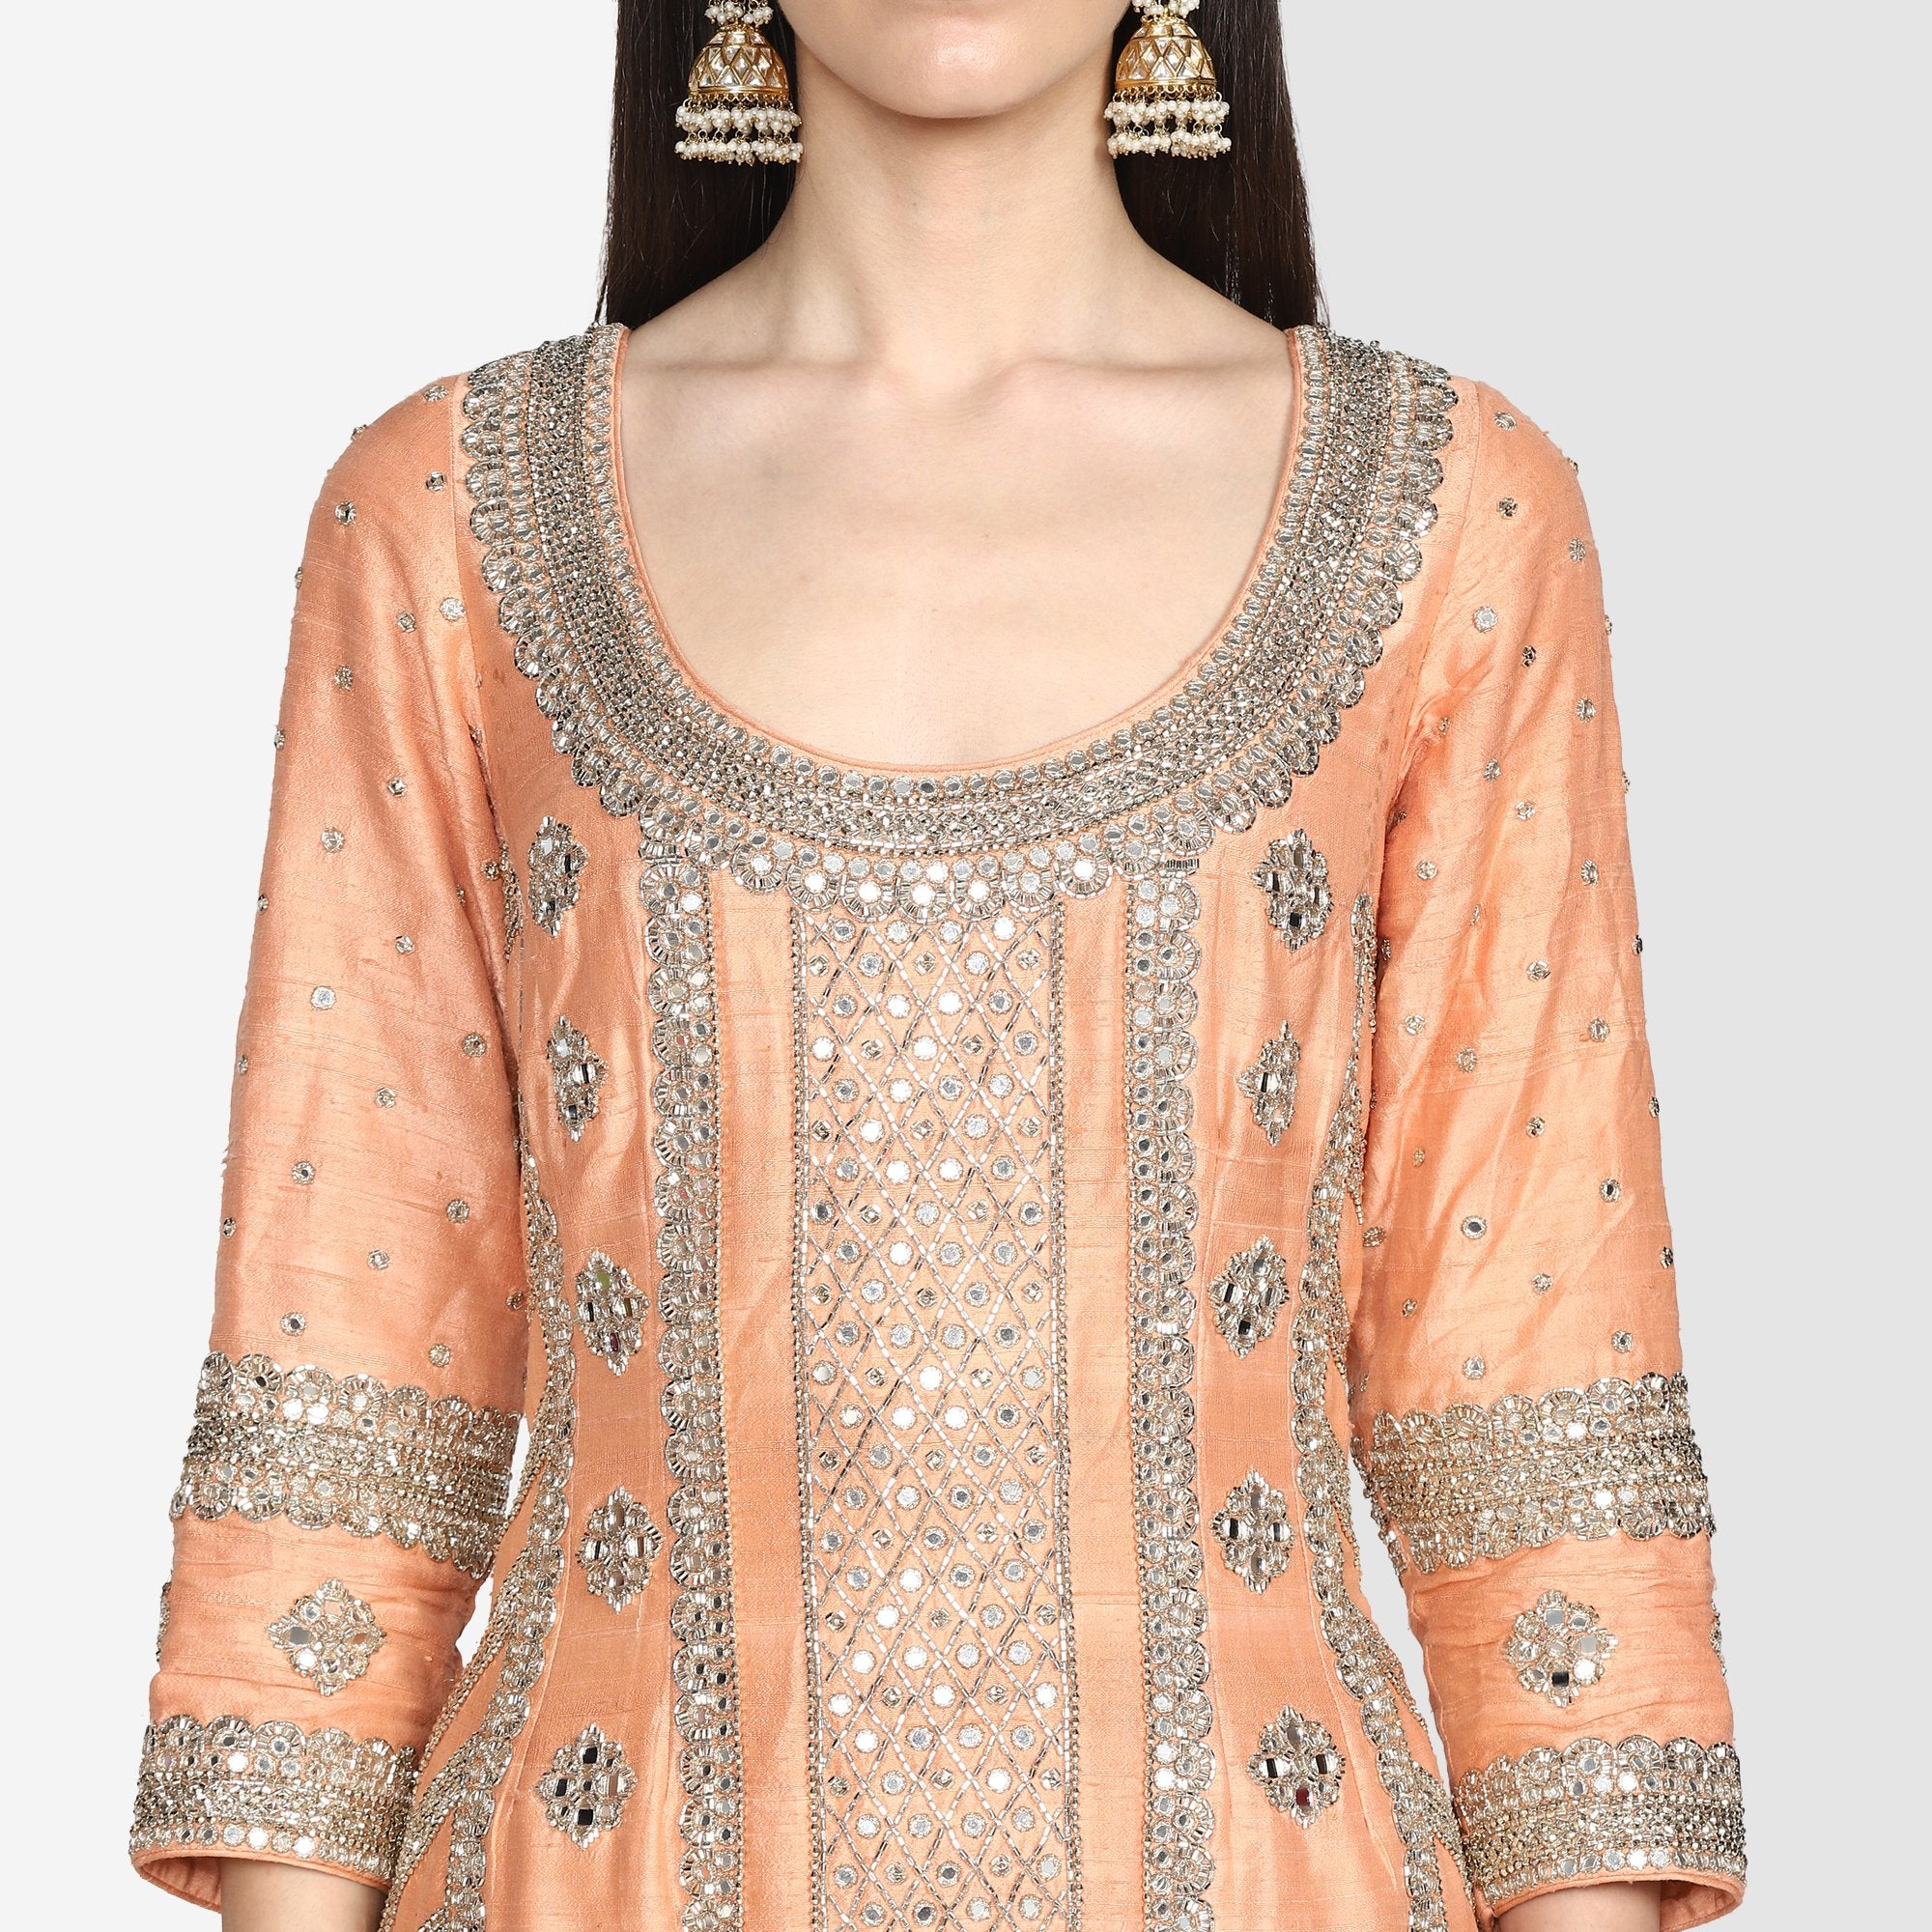 Abhinav Mishra Peach Sharara Set - The Grand Trunk